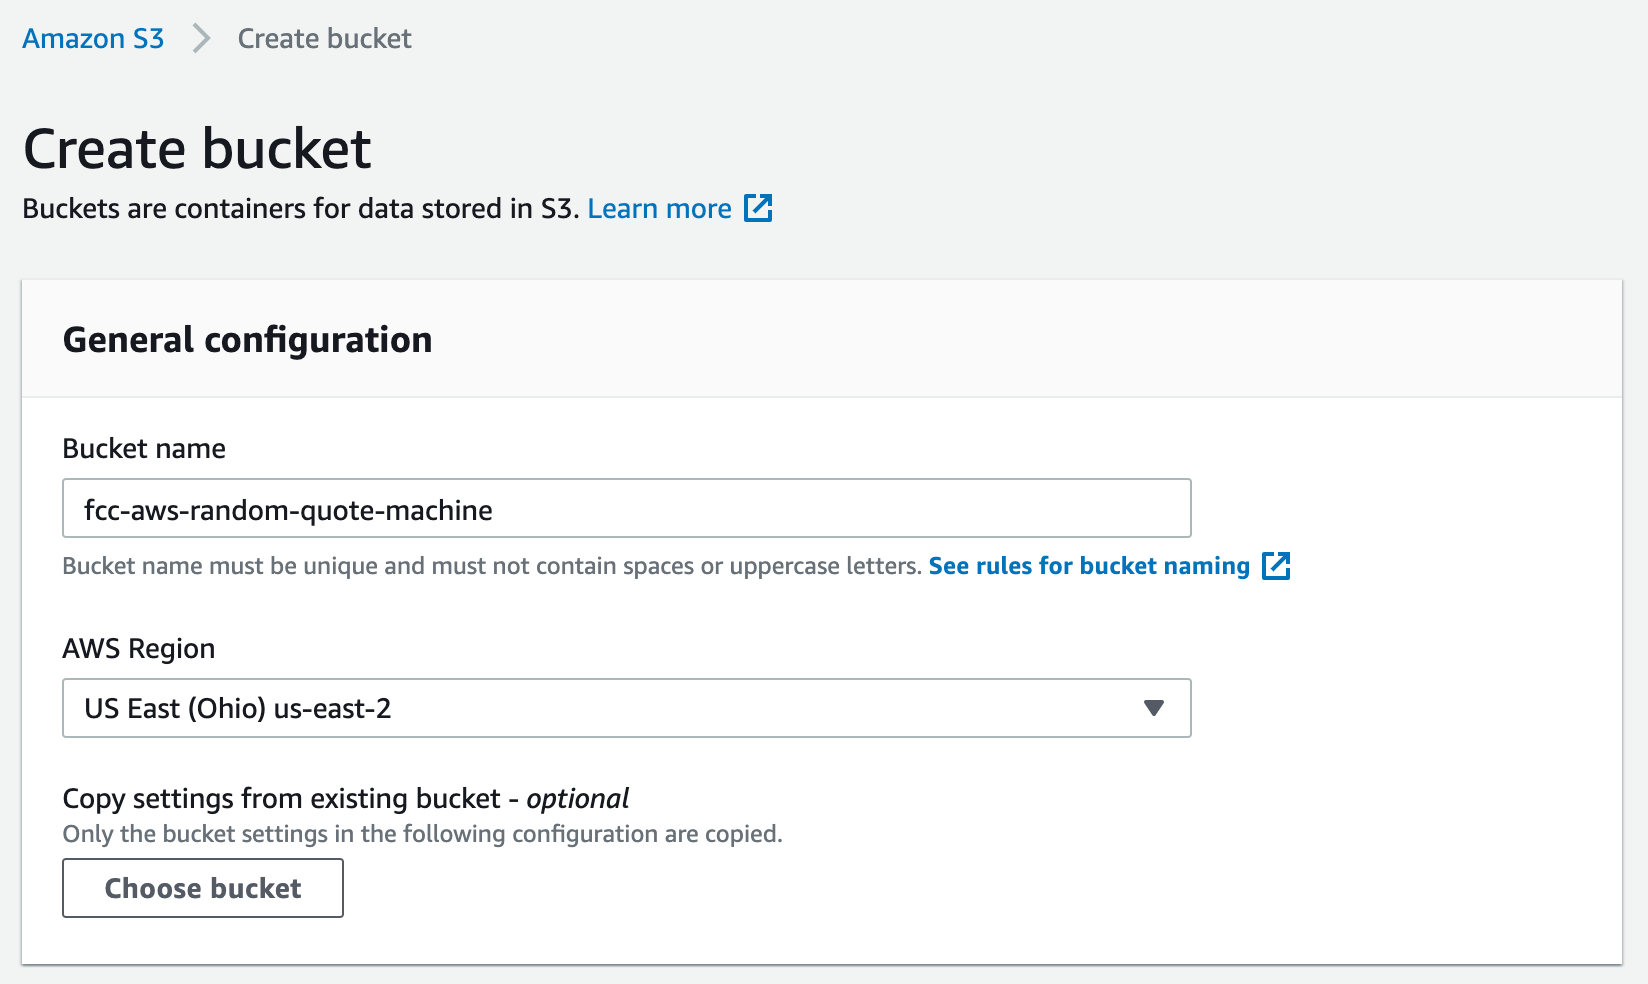 Input form for creating an S3 bucket